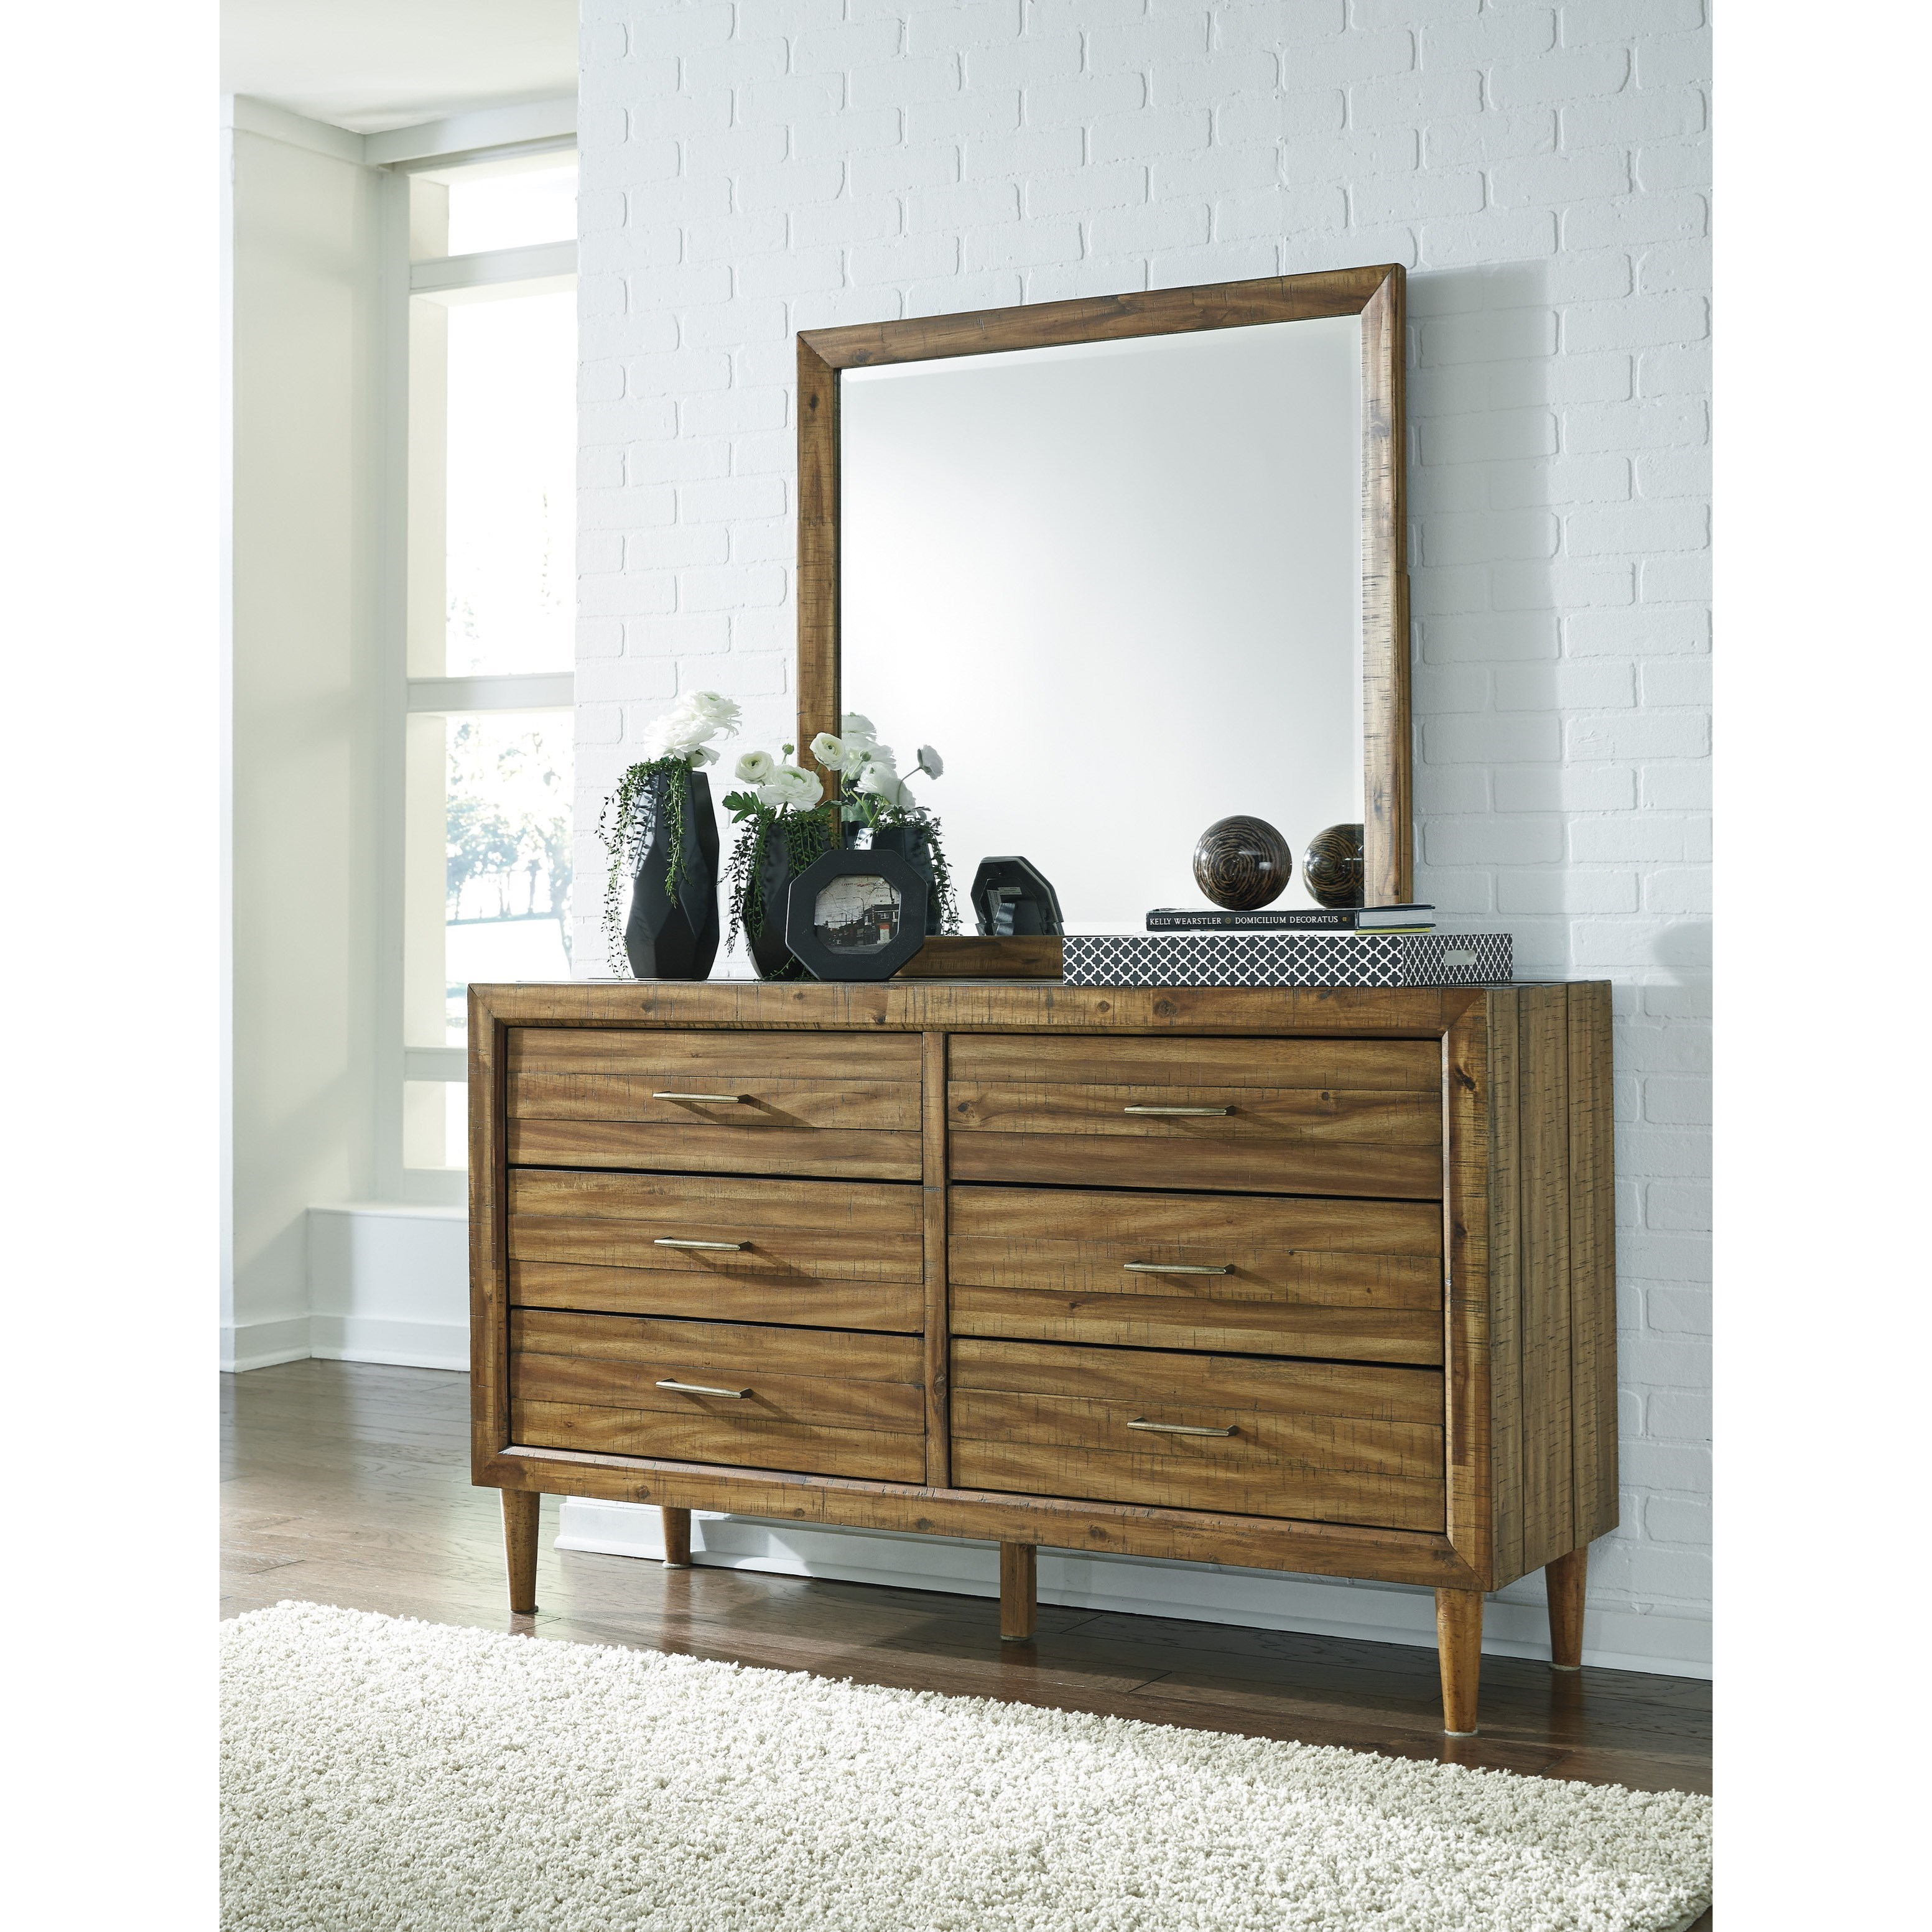 Ashley Furniture Broshtan Door And Drawer Chest: Signature Design By Ashley Broshtan 6 Drawer Dresser And